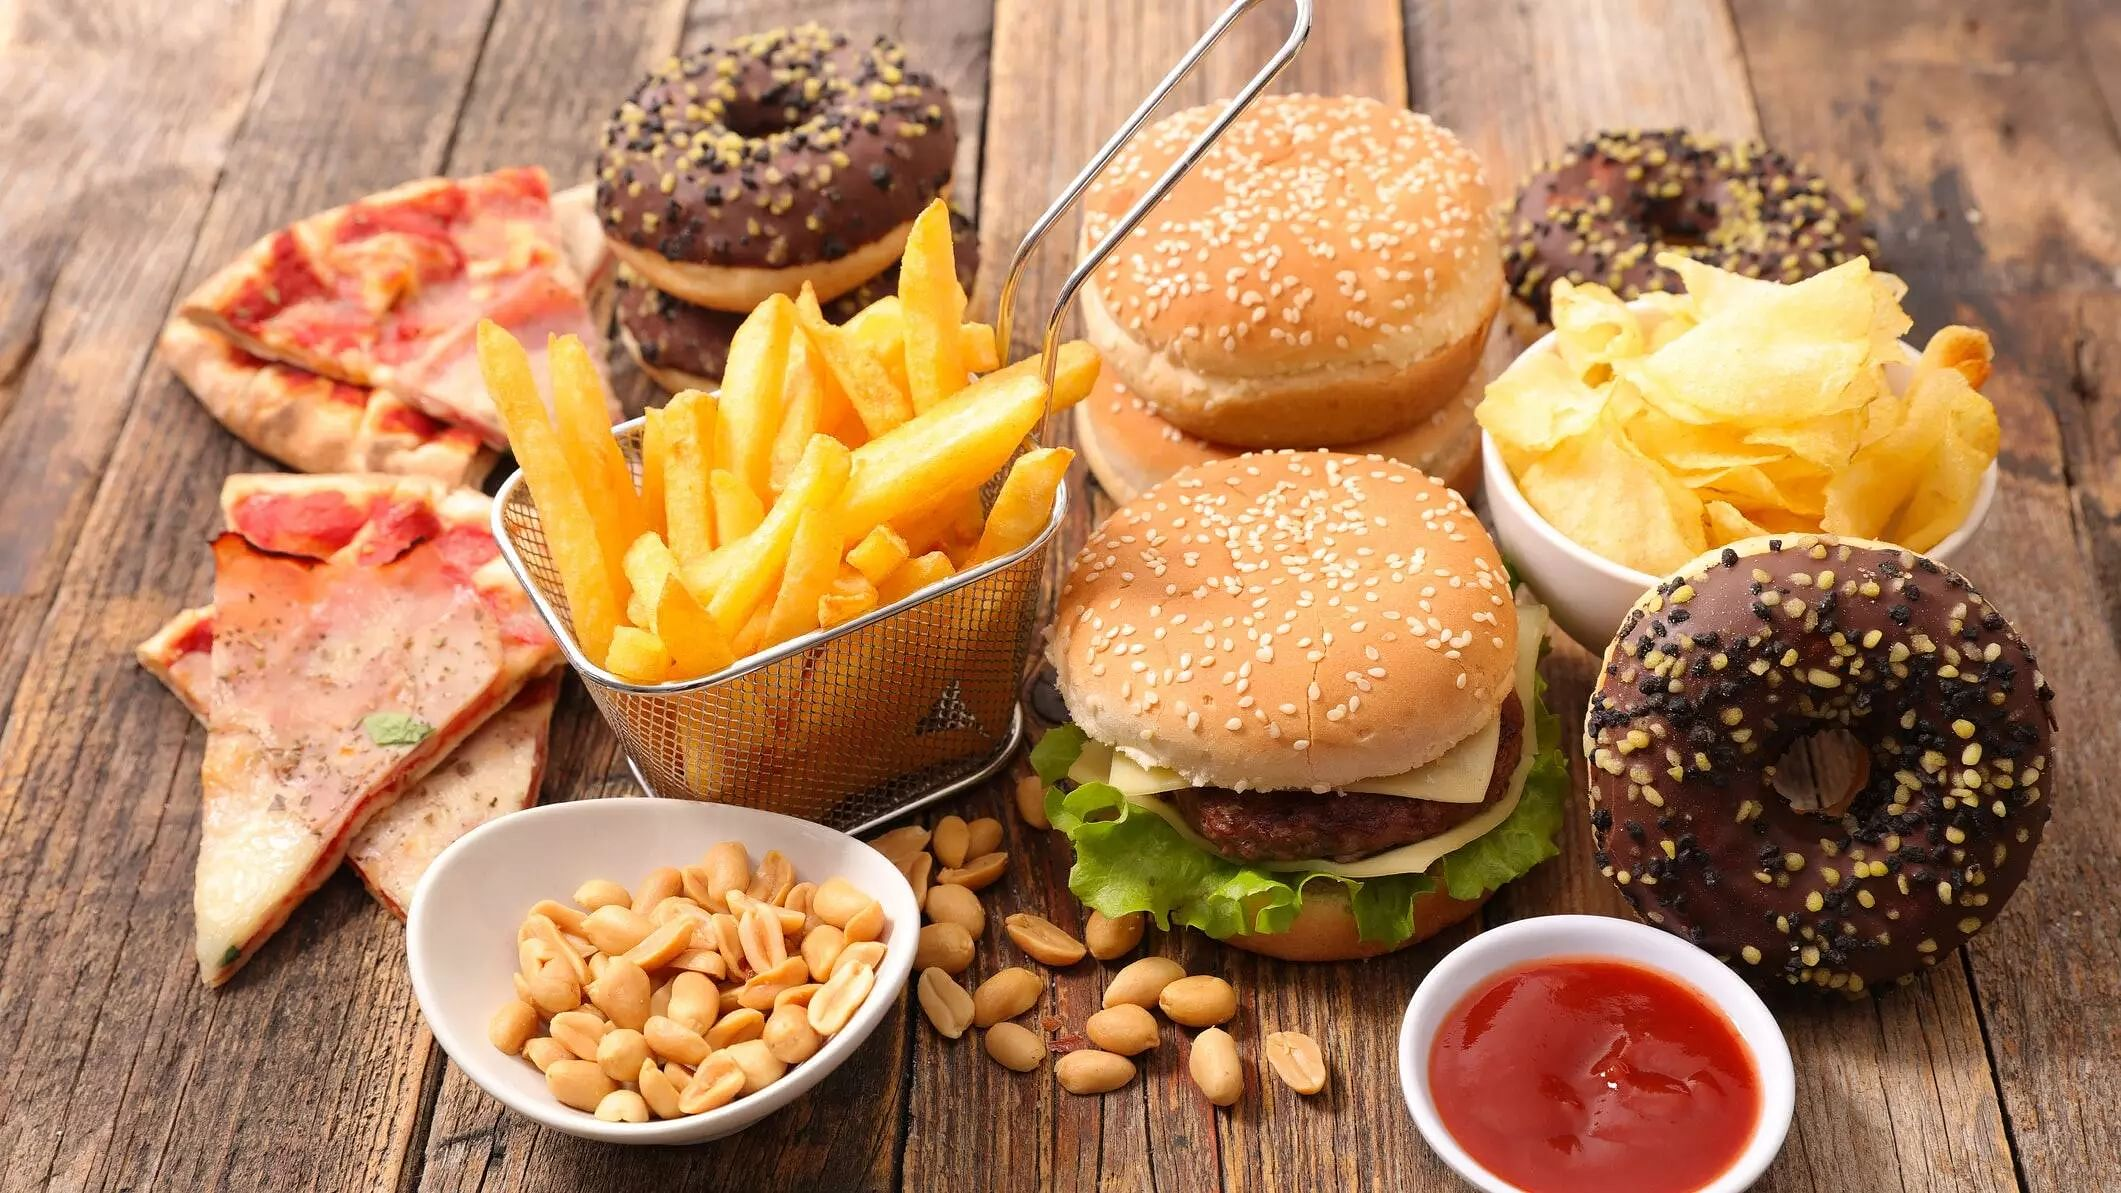 High cholesterol foods that you need to avoid